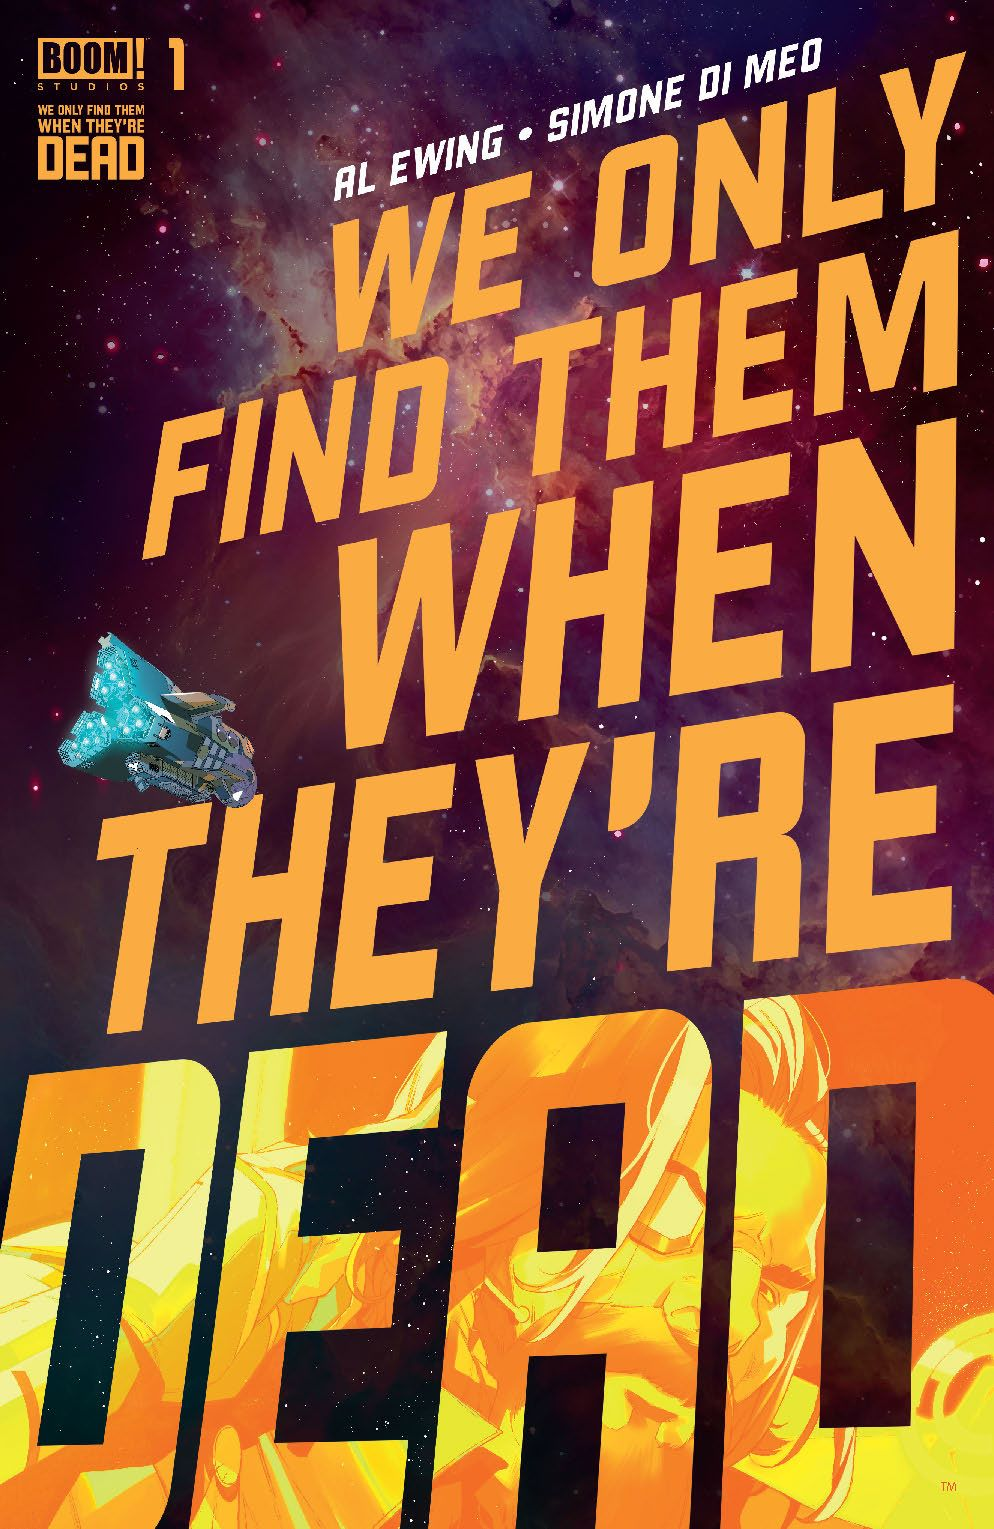 WeOnlyFindThem_001_Cover_Main ComicList: BOOM! Studios New Releases for 09/02/2020